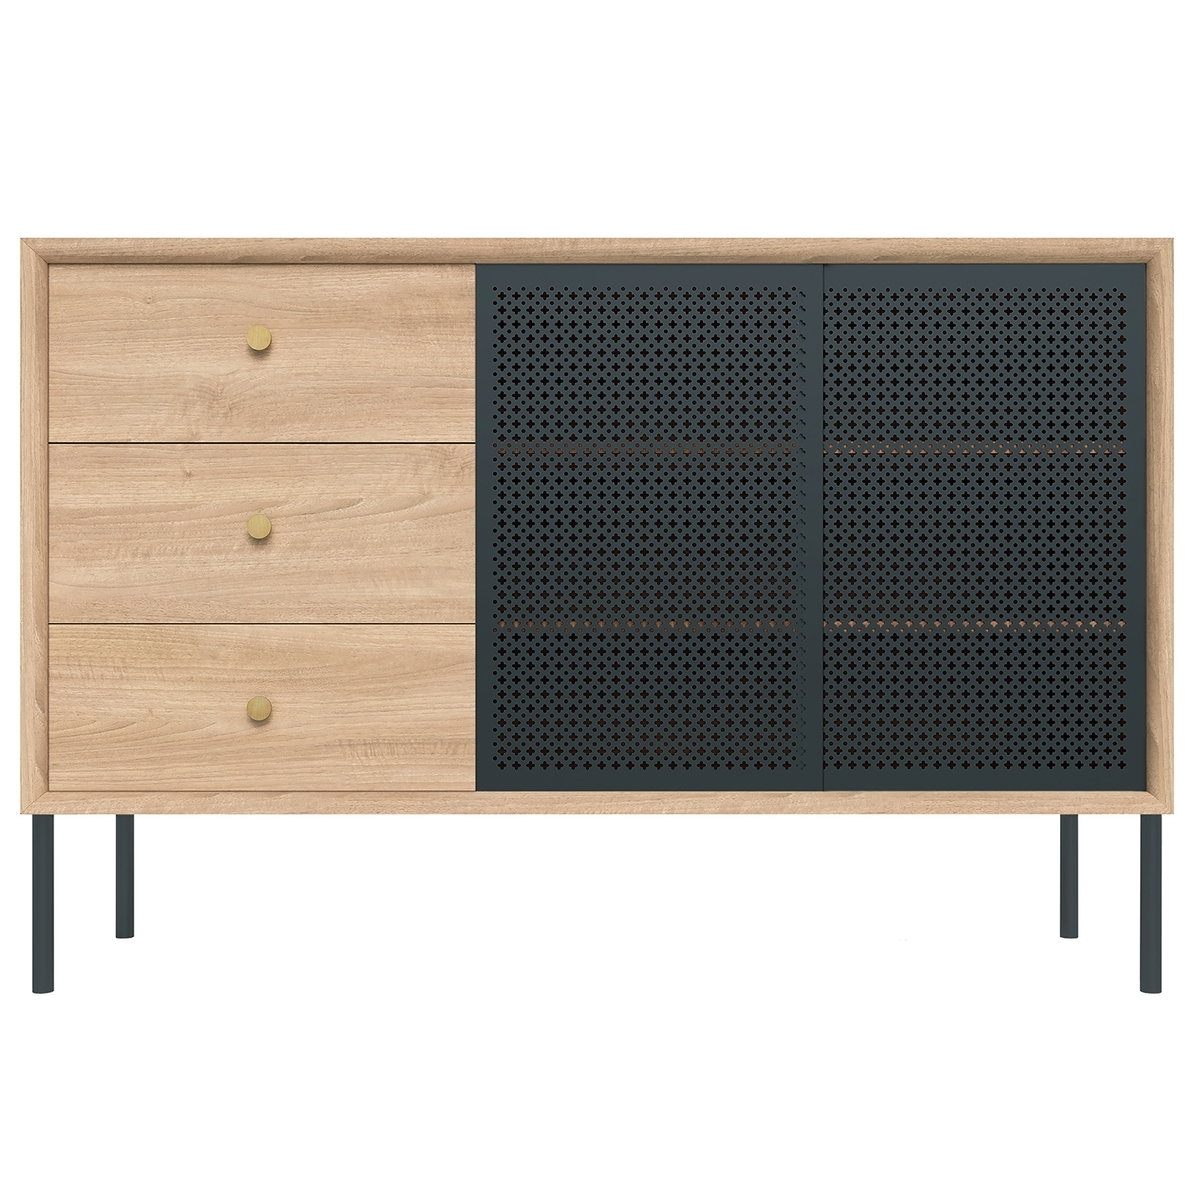 Harto Gabin Sideboard With Drawers, High, Oak – Slate Grey | Finnish With Most Recent Open Shelf Brass 4 Drawer Sideboards (View 19 of 20)